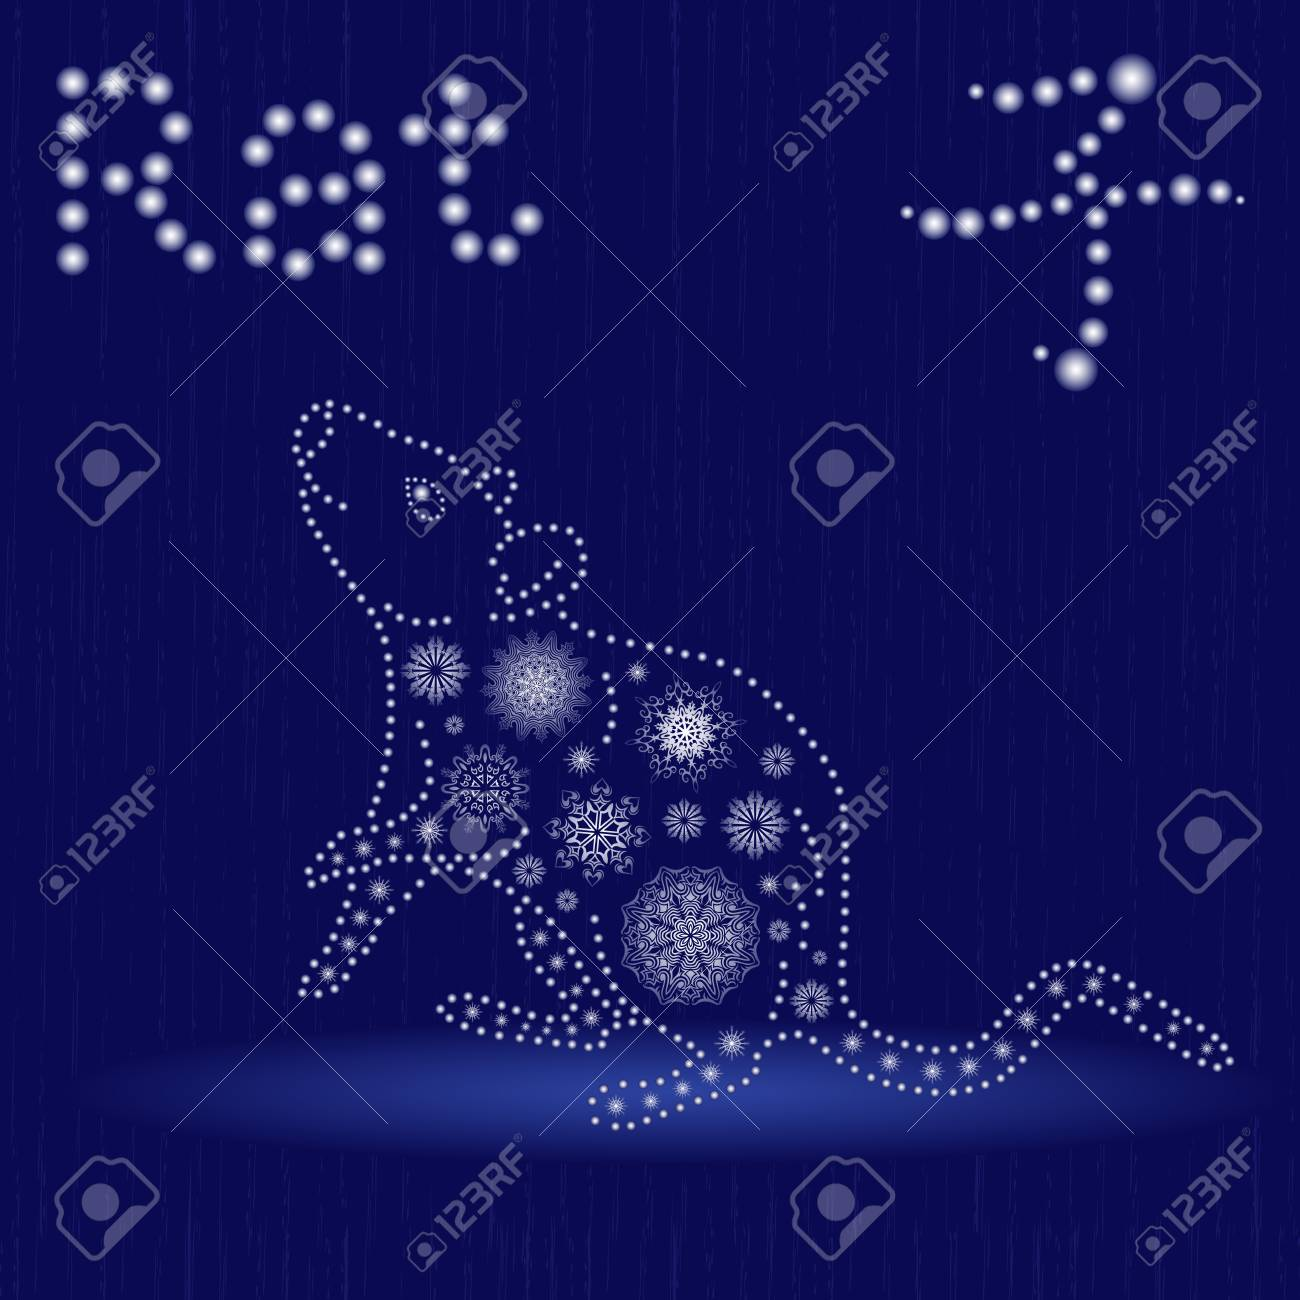 Chinese zodiac sign rat fixed element water symbol of new year chinese zodiac sign rat fixed element water symbol of new year on the eastern buycottarizona Images